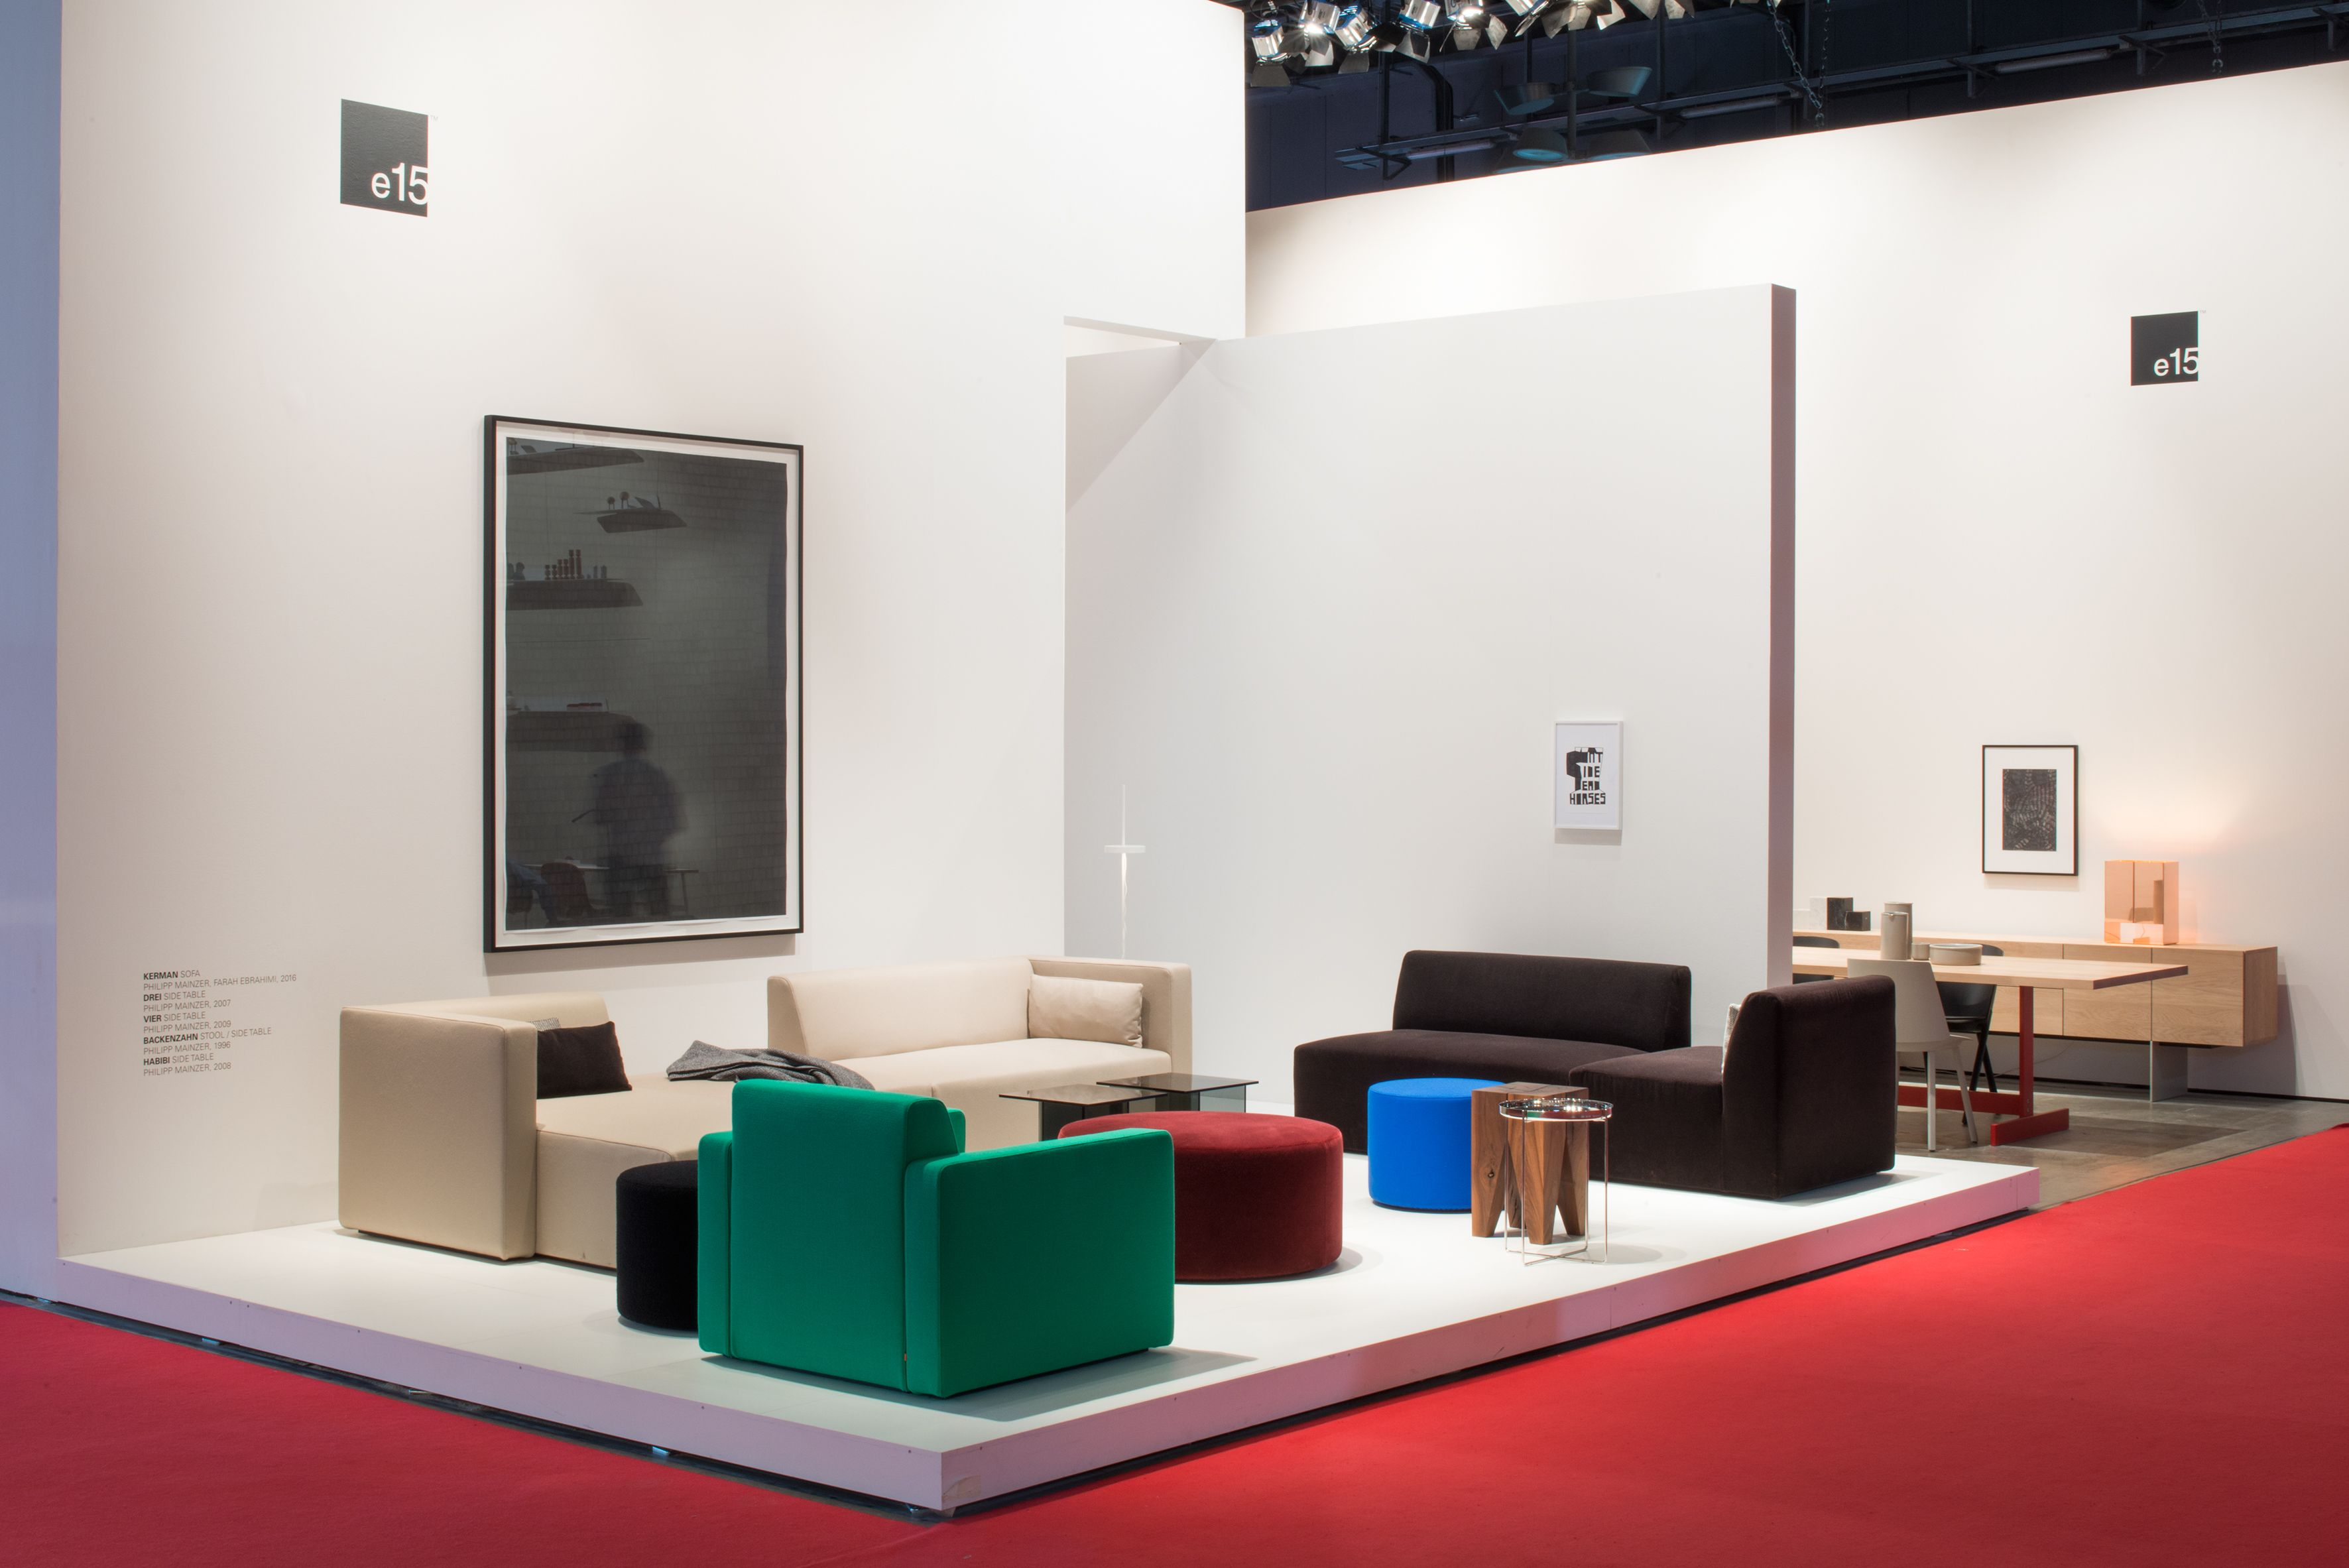 Salone Arredamento ~ E15 fair stand at salone del mobile 2017. more: www.e15.com